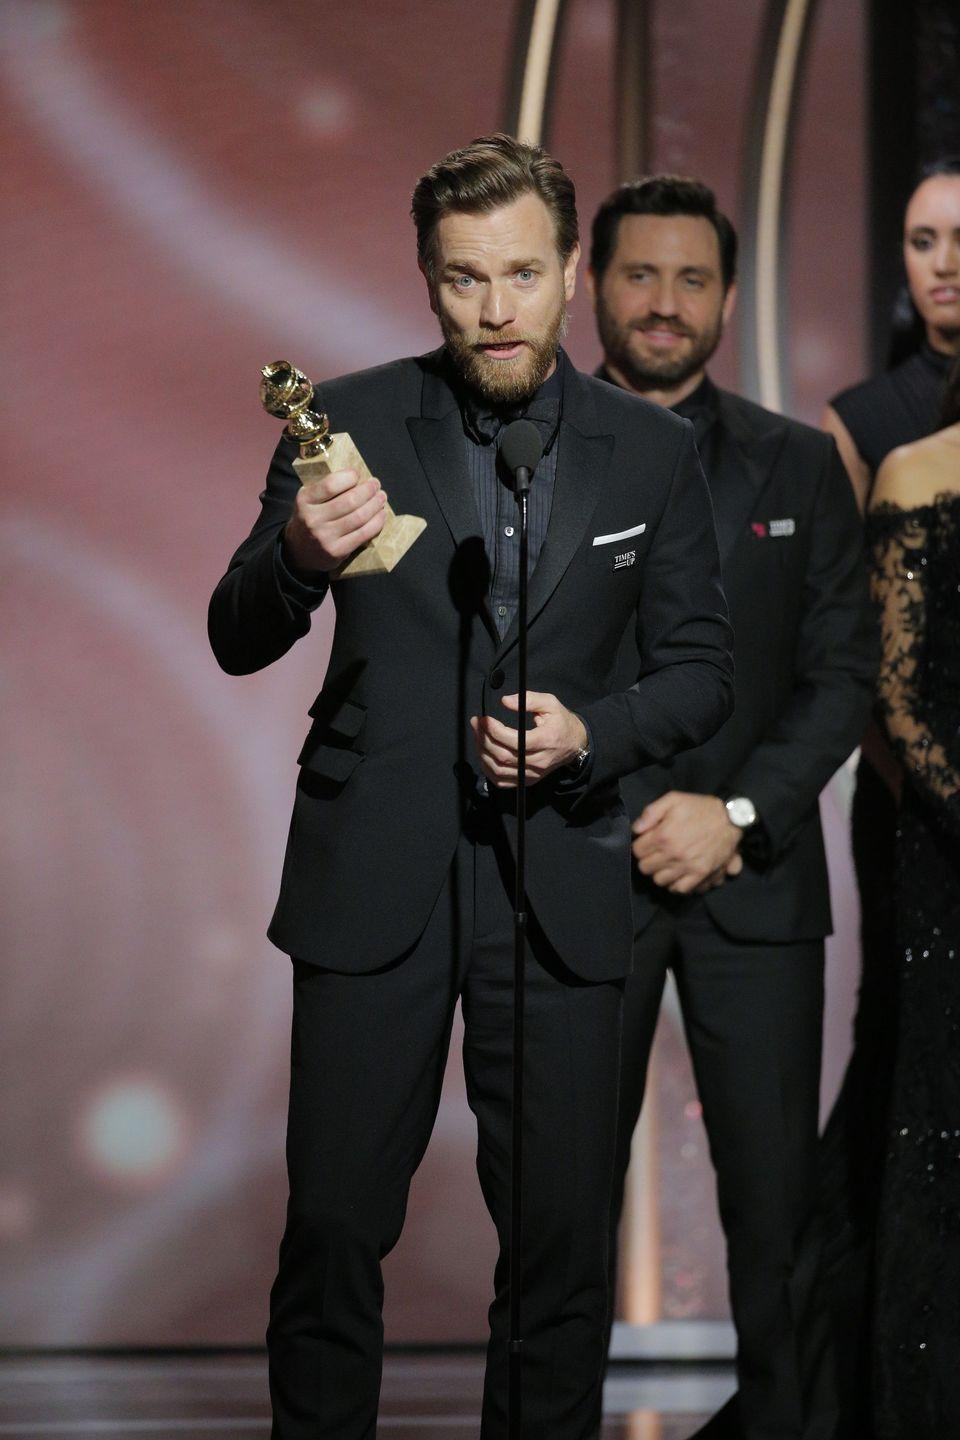 """<p>Someone might want to tell Ewan for the next time that it's probably not the best idea to thank both your estranged wife AND girlfriend in <a href=""""https://www.cosmopolitan.com/uk/entertainment/a14777210/ewan-mcgregor-golden-globes-speech-thanked-wife-girlfriend/"""" rel=""""nofollow noopener"""" target=""""_blank"""" data-ylk=""""slk:the same acceptance speech"""" class=""""link rapid-noclick-resp"""">the same acceptance speech</a>. He did just that at the 2018 ceremony while winning for Best Actor in a Limited Series. What's worse, Ewan's estranged wife, Eve Mavrakis, <a href=""""https://www.mirror.co.uk/3am/celebrity-news/ewan-mcgregor-wife-breaks-silence-11843658"""" rel=""""nofollow noopener"""" target=""""_blank"""" data-ylk=""""slk:told reporters"""" class=""""link rapid-noclick-resp"""">told reporters</a> she """"did not like"""" it one bit.</p>"""